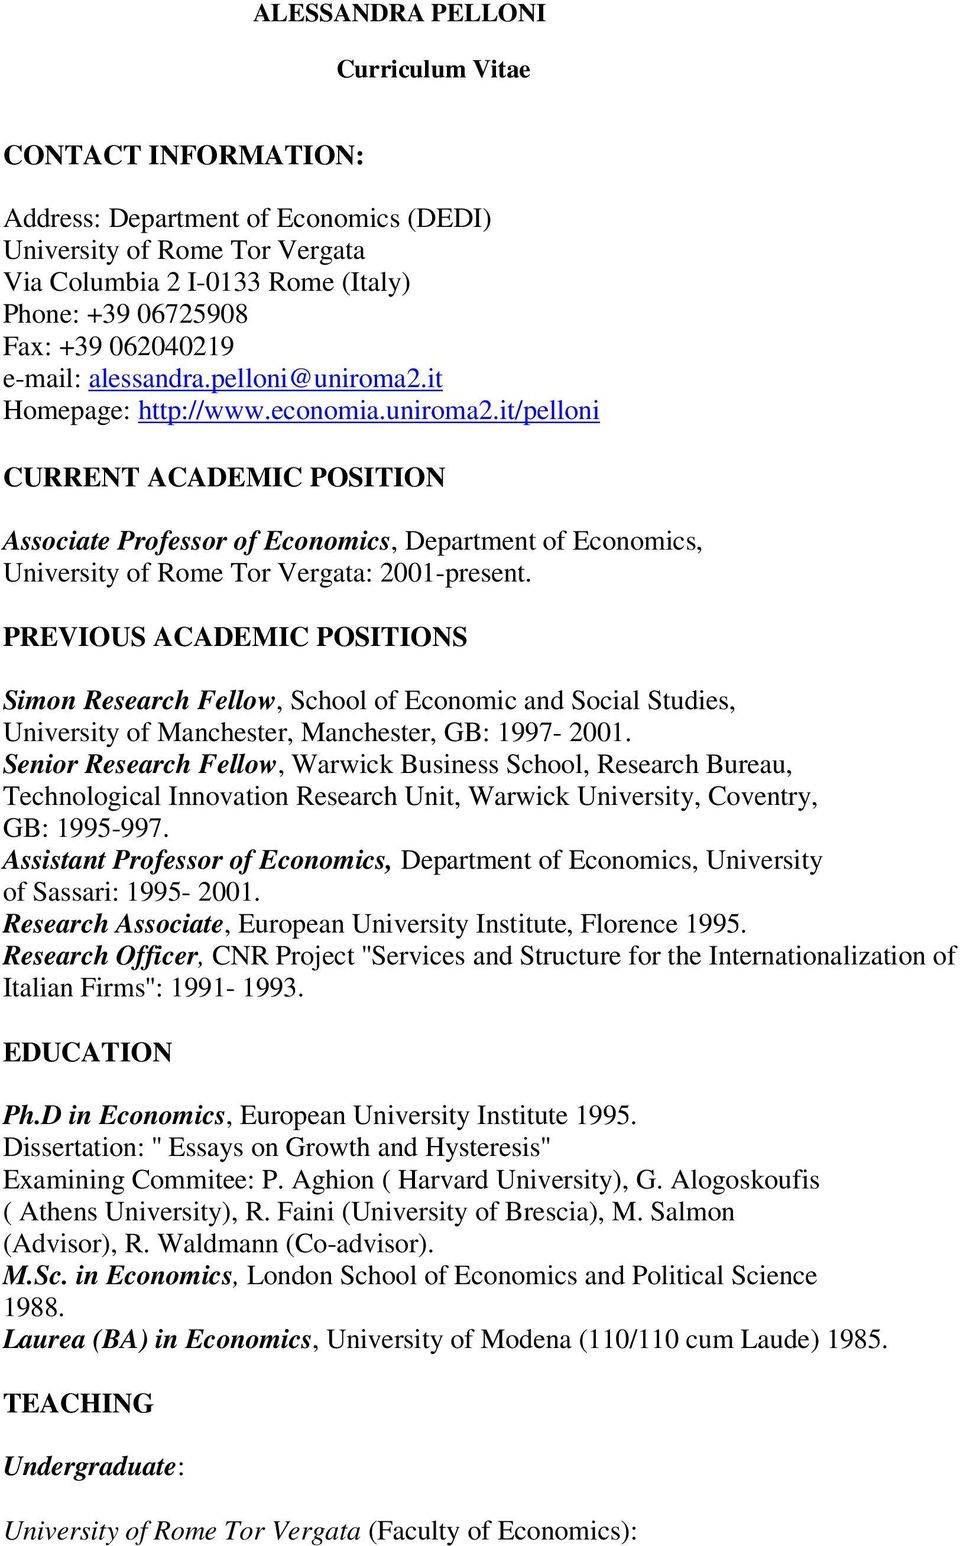 PREVIOUS ACADEMIC POSITIONS Simon Research Fellow, School of Economic and Social Studies, University of Manchester, Manchester, GB: 1997-2001.